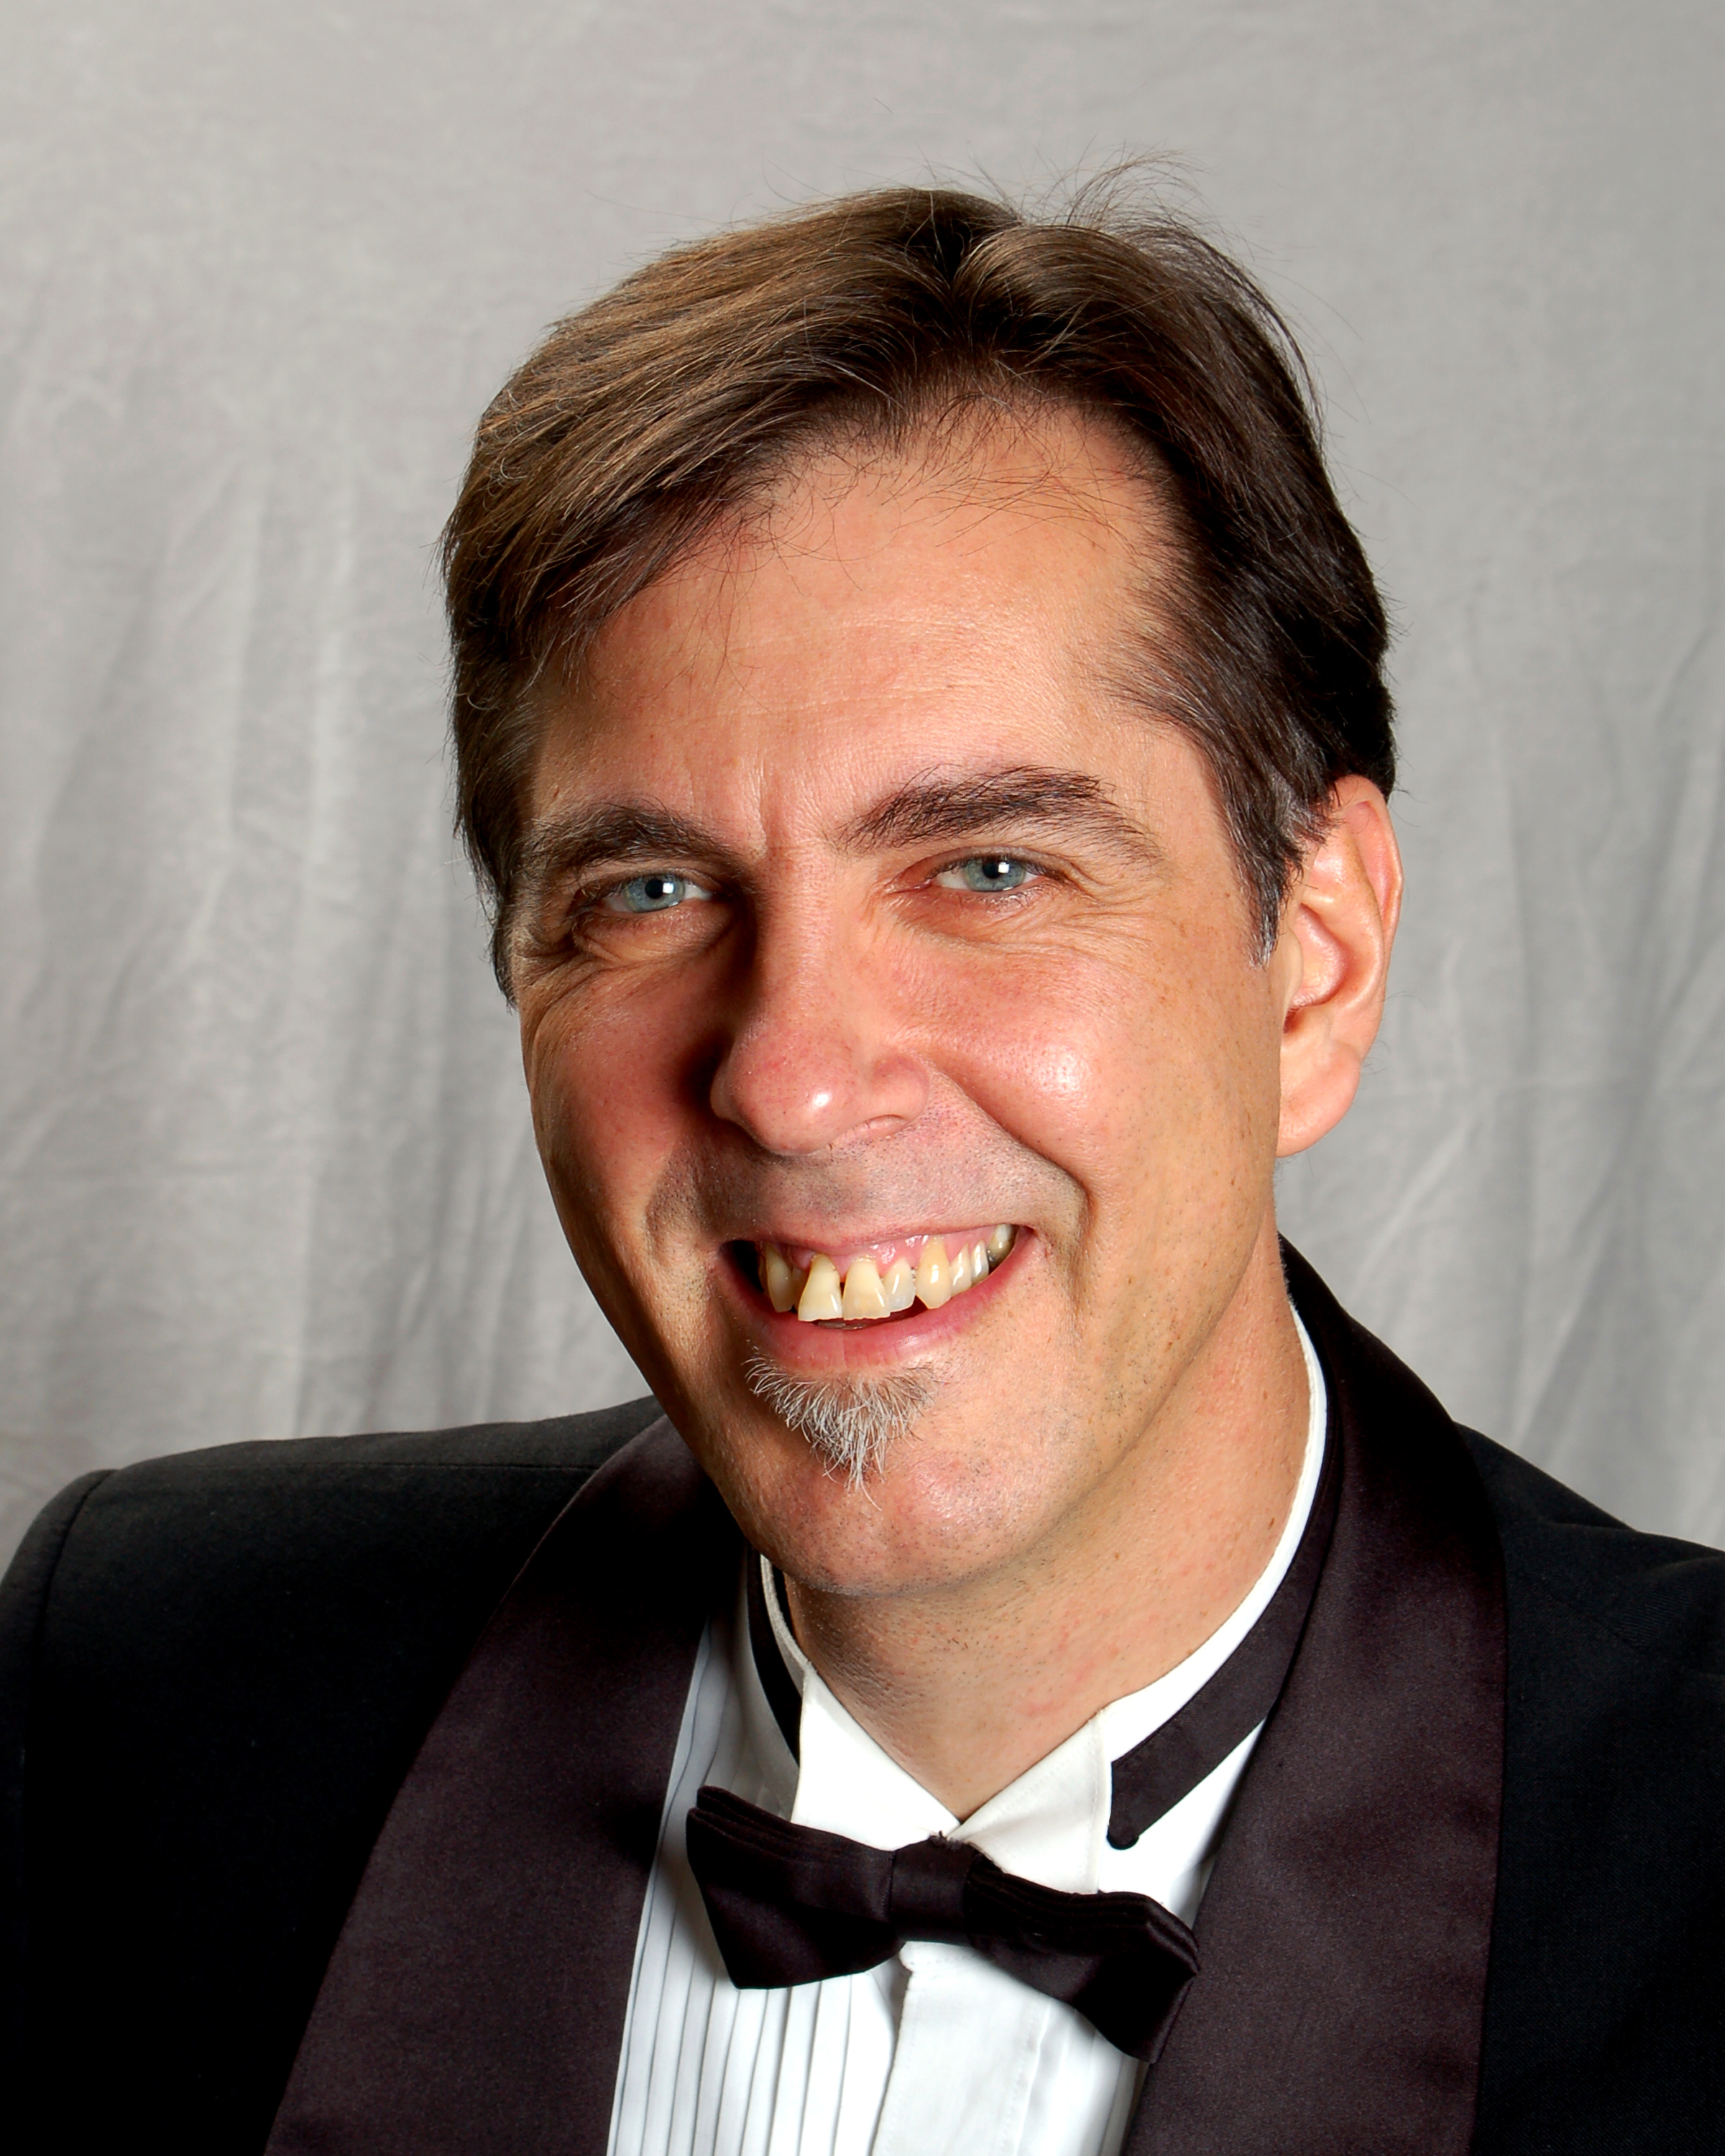 an experience at the 1996 louisville orchestra John rommel was principal trumpet of the louisville orchestra (1988-1996) and   his chamber music experience includes performances with summit brass,.